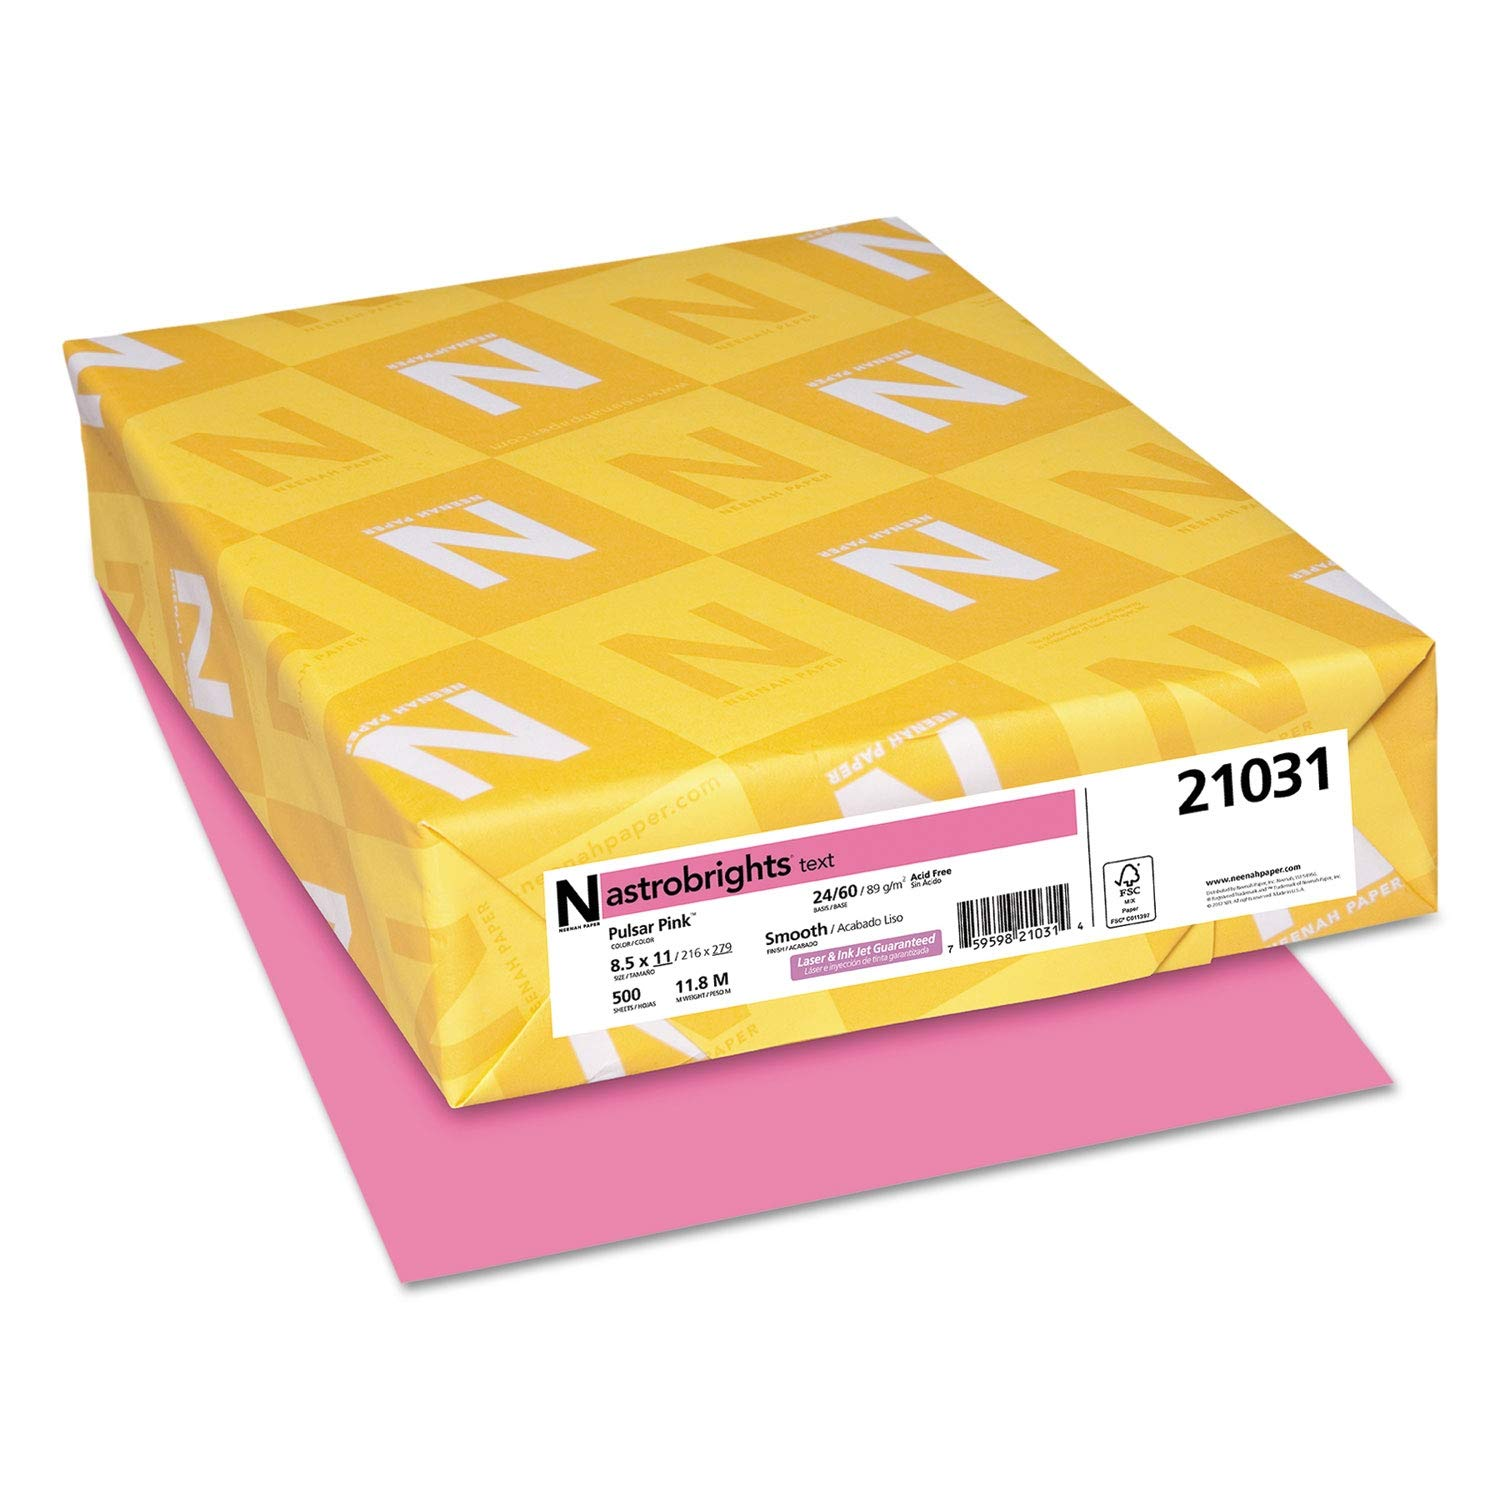 Astrobrights Color Paper, 24lb, 8 1/2 x 11, Pulsar Pink, 500 Sheets - 21031 (Pack of 2)